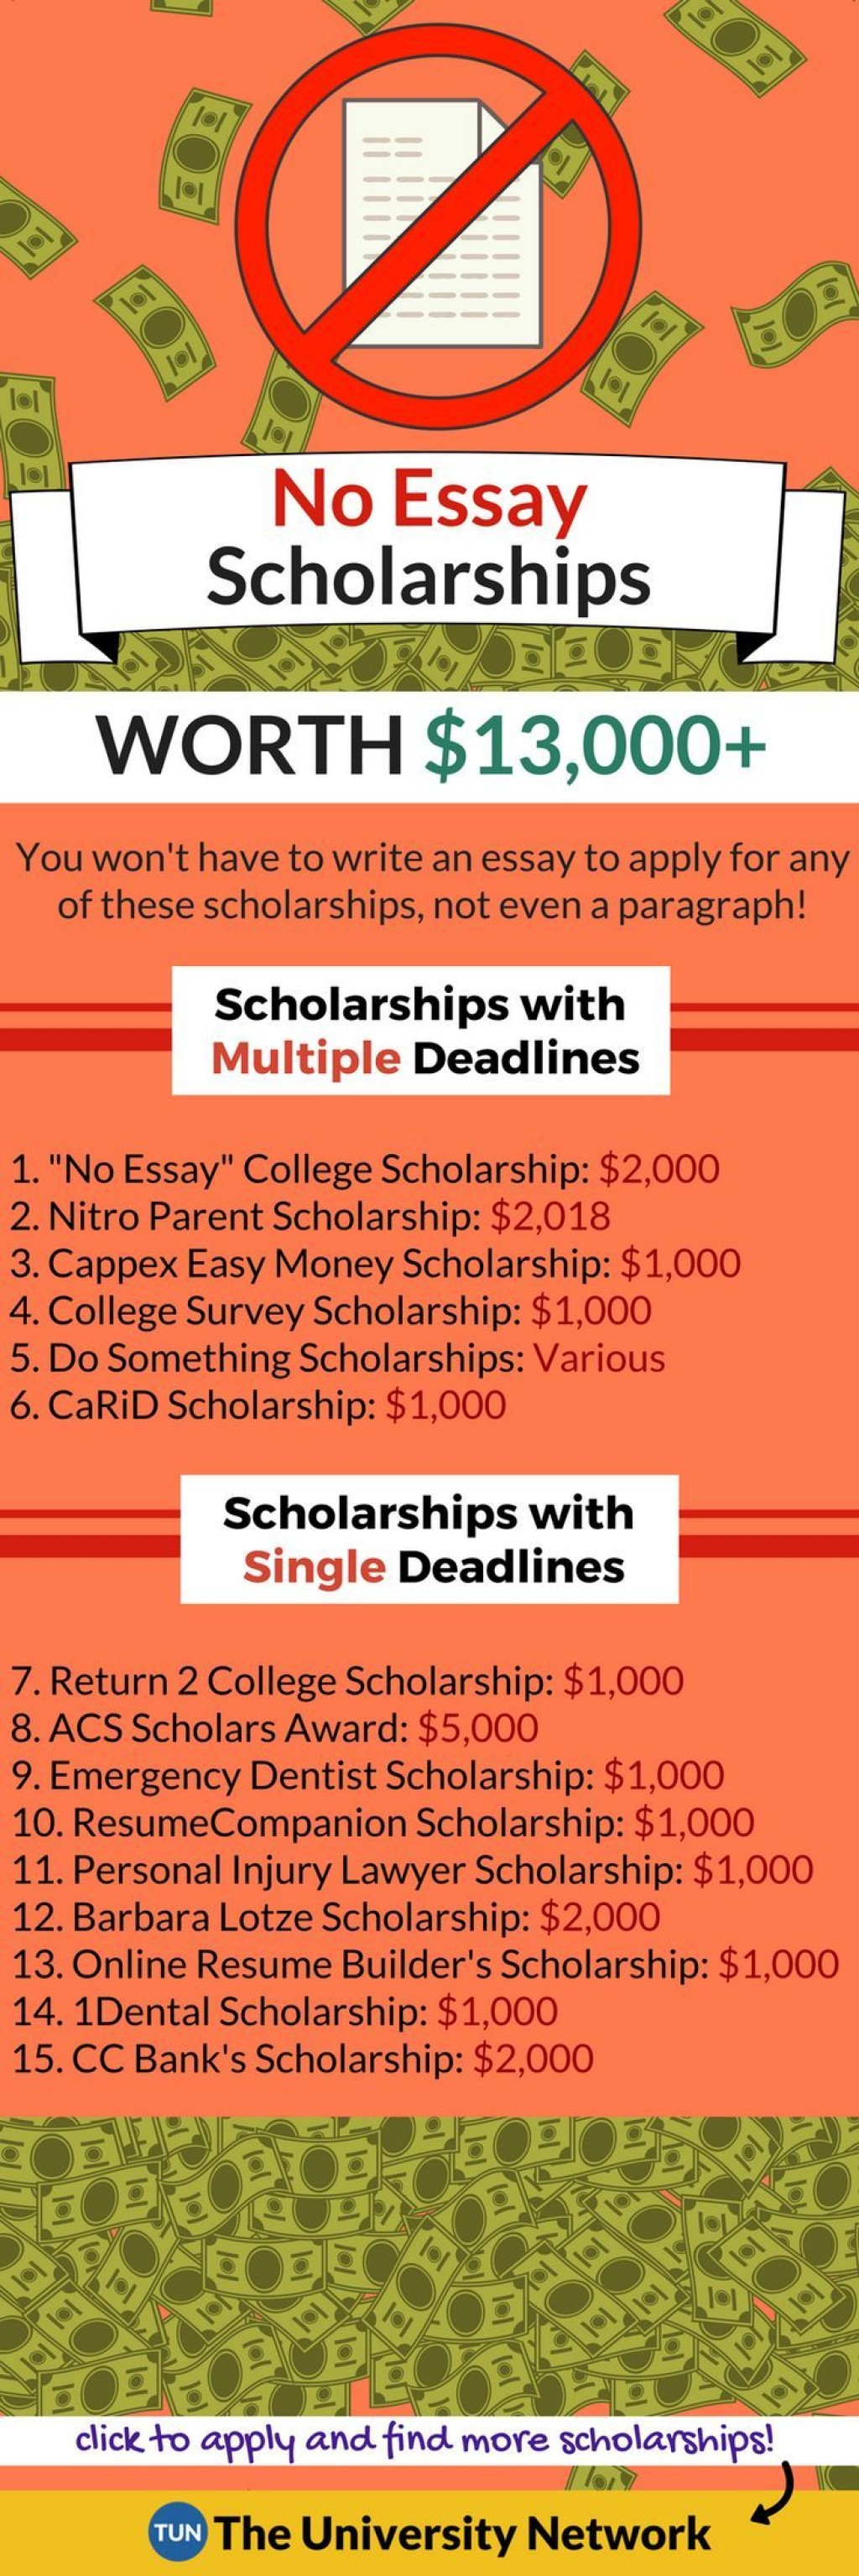 024 Essay Example No Scholarships For High School Rare Seniors 2018 Short Large